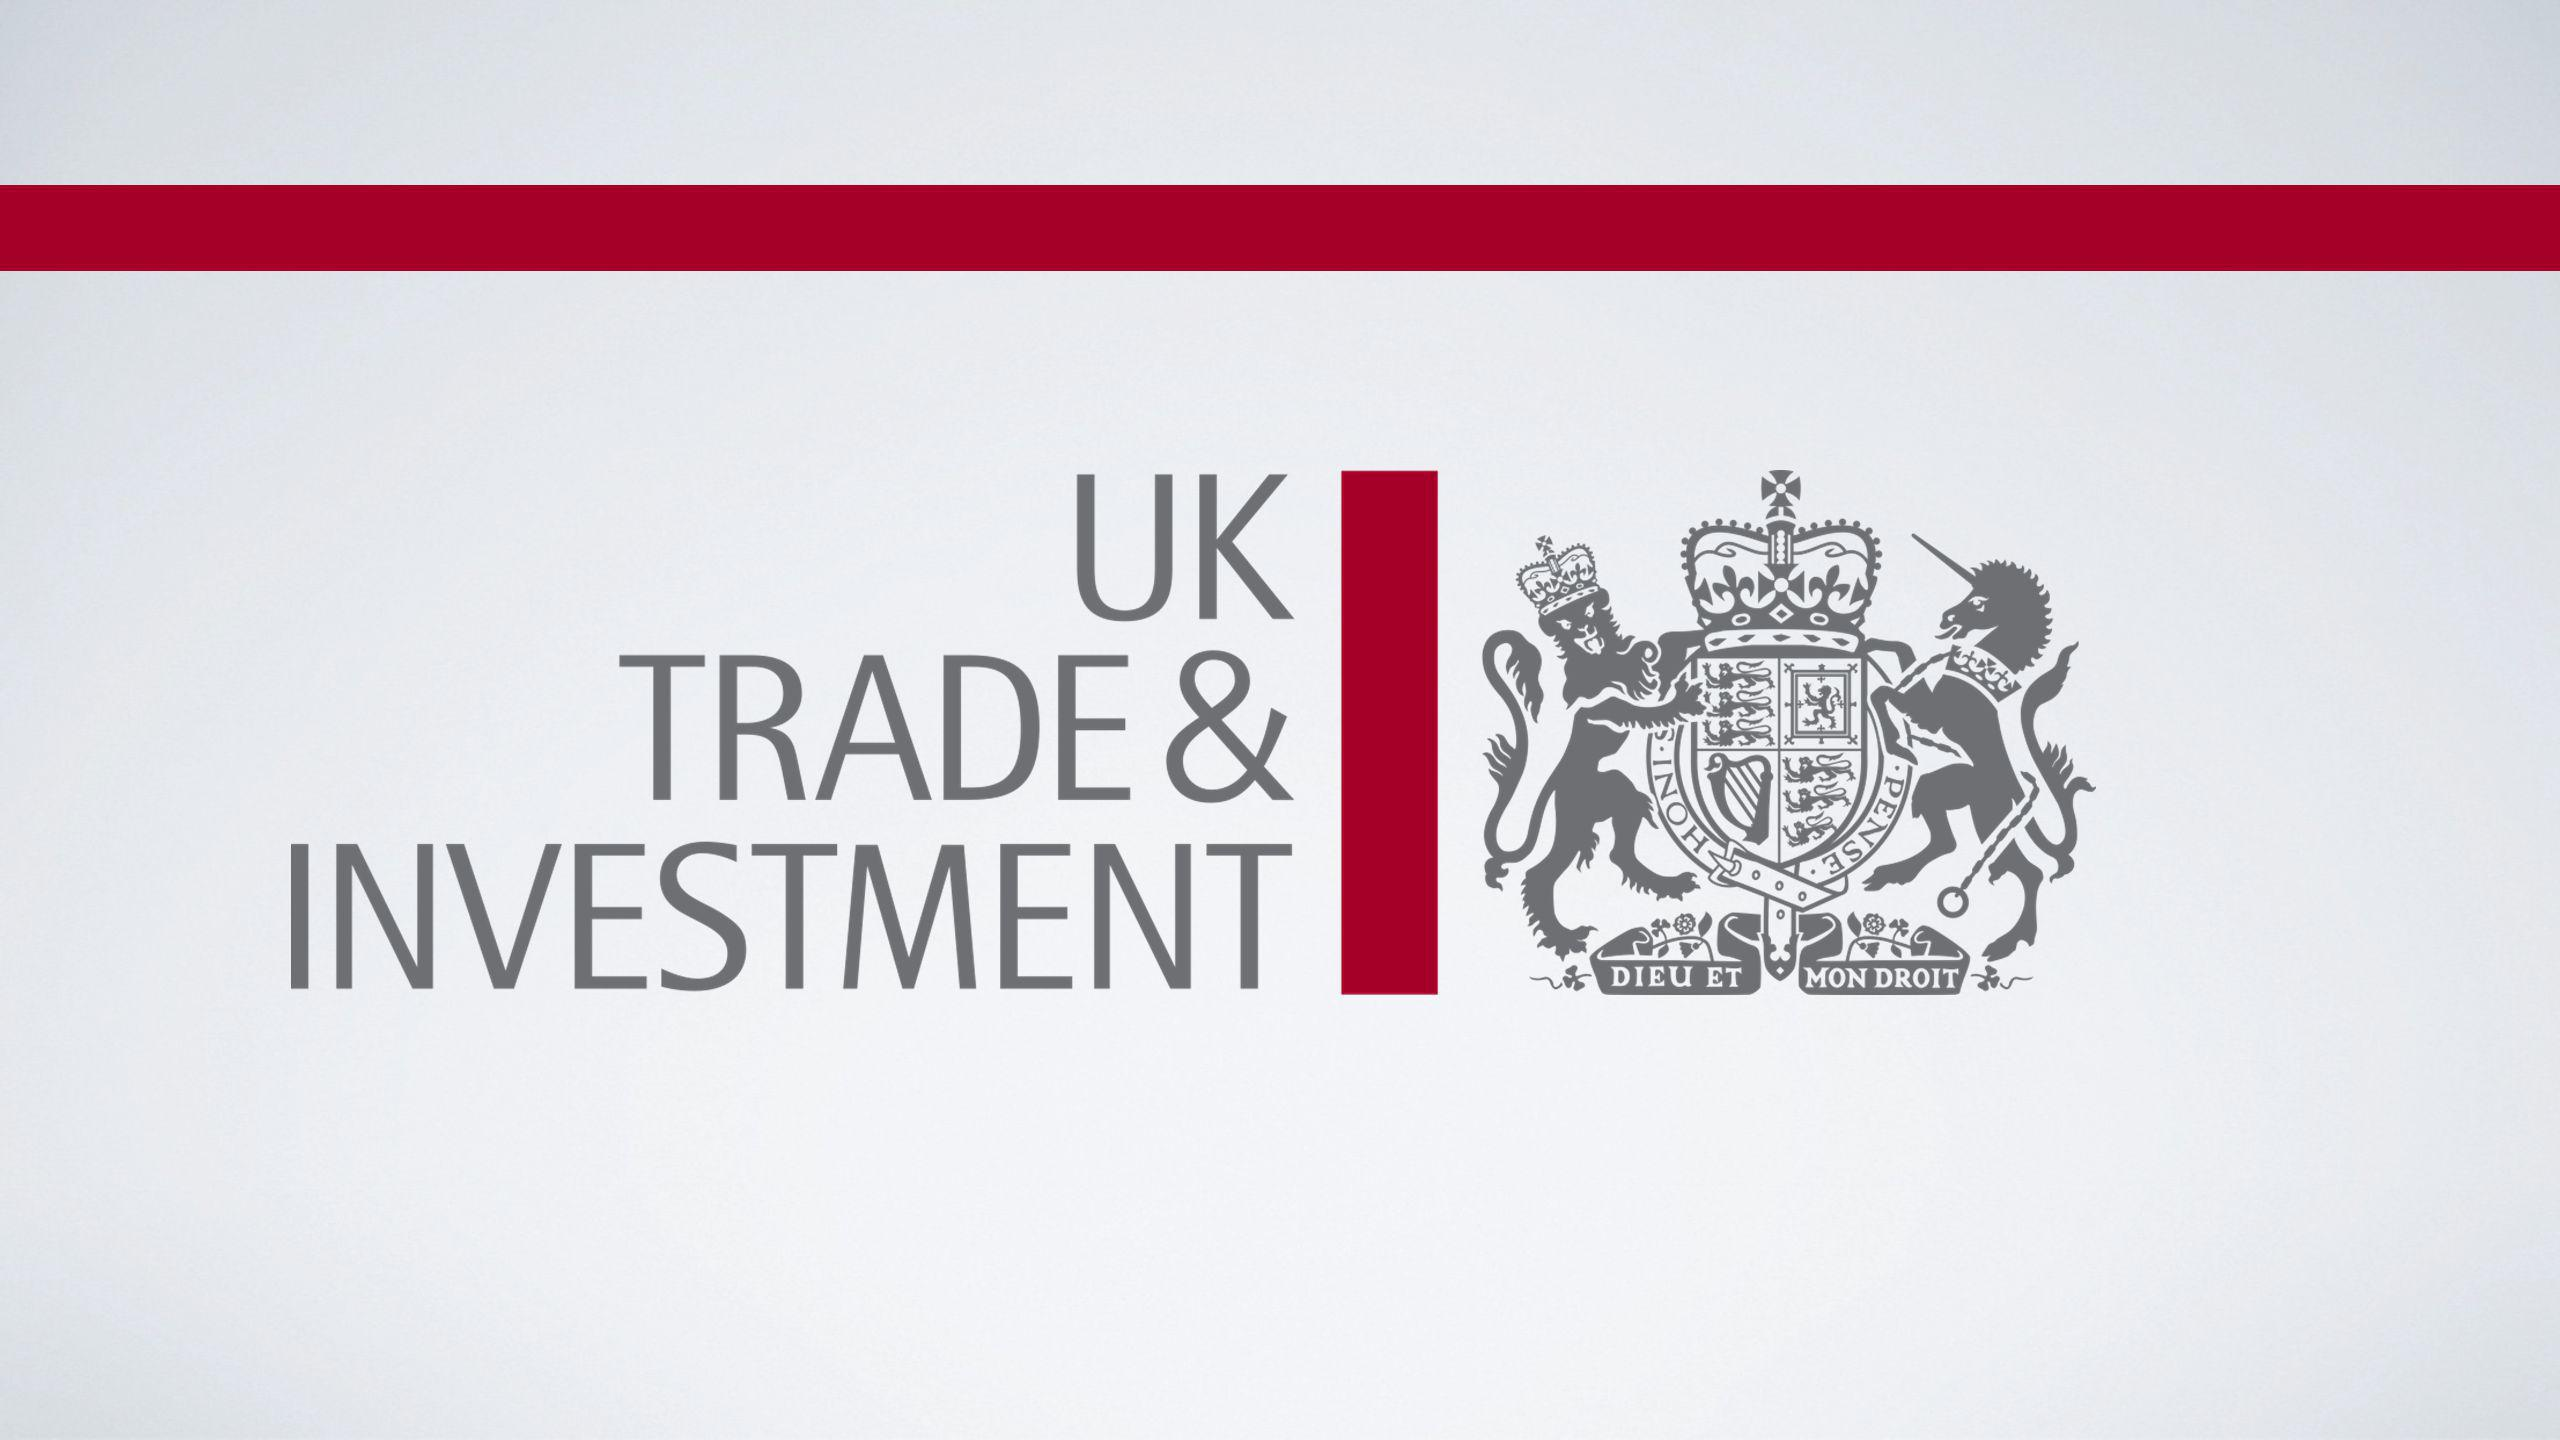 UKTI in Mexico ·32 professional advisors - organised in sector teams · Main office located in the British Embassy in Mexico City, and 3 regional commercial offices: Guadalajara, Monterrey and Tijuana · Directly supported over 1000 companies during FY 2009/10 and 2010/2011